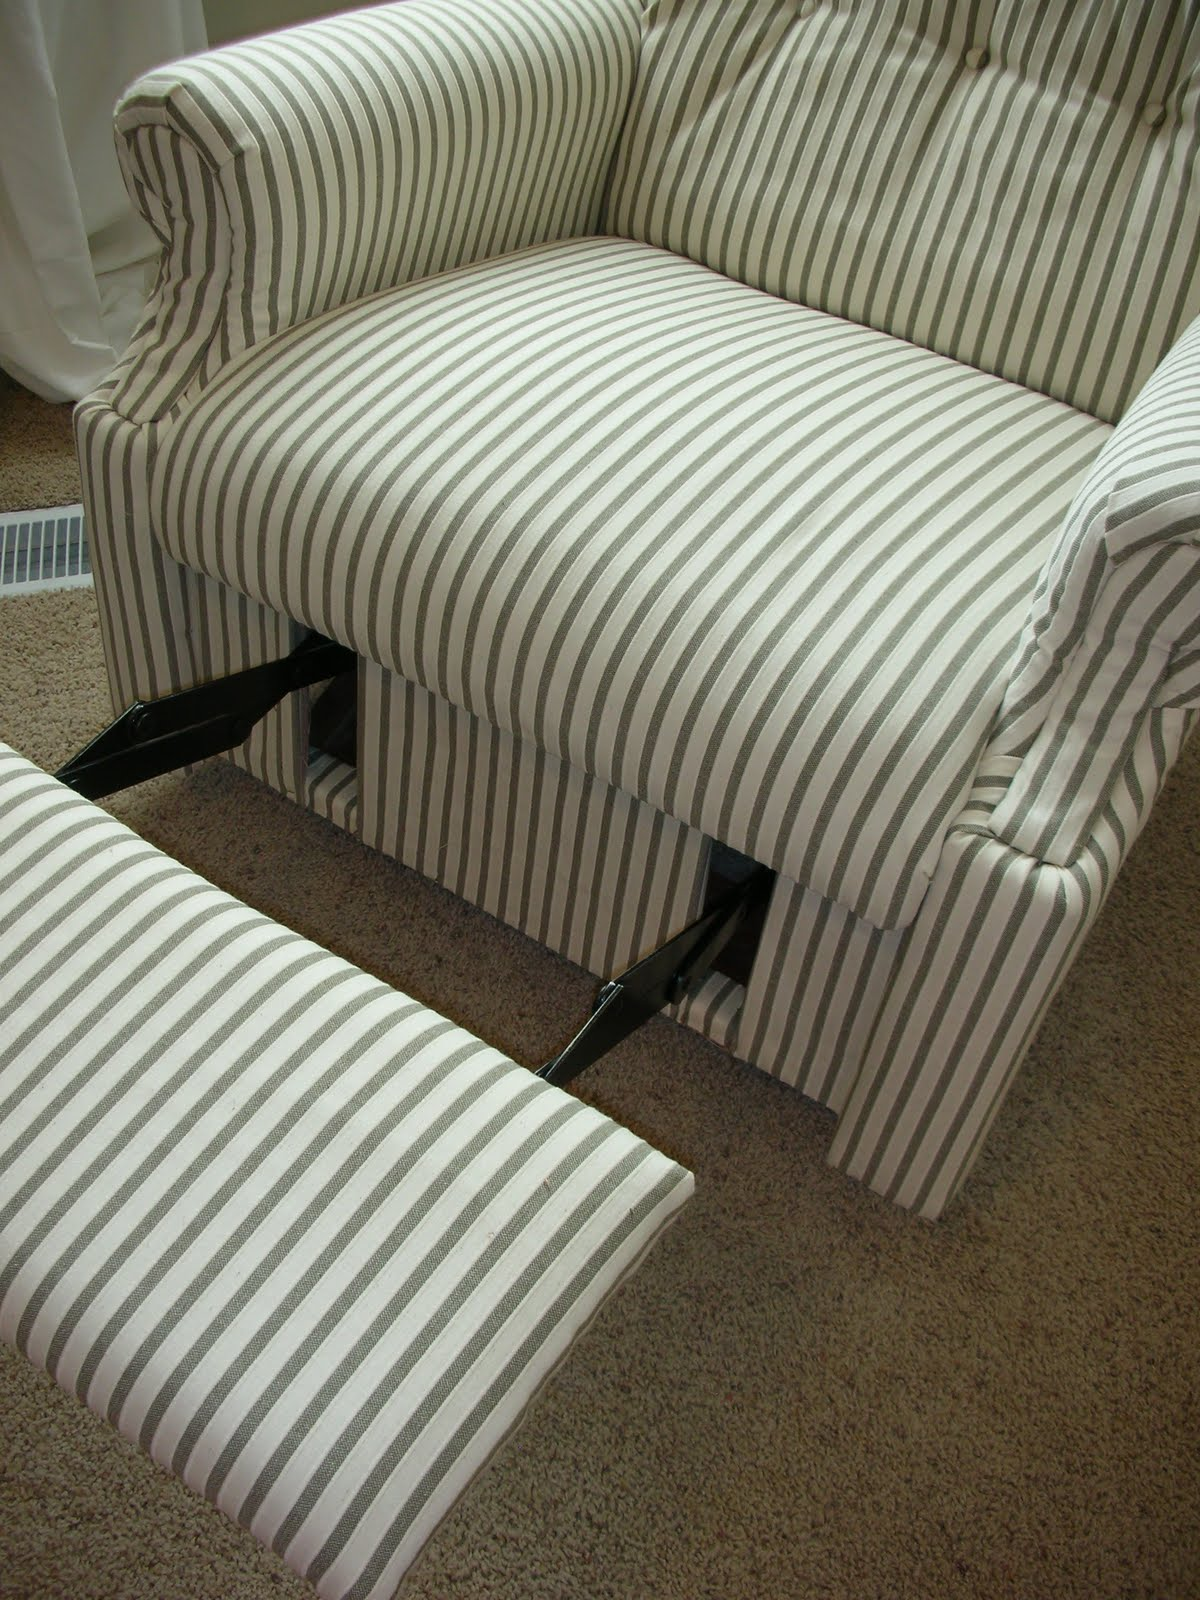 how to reupholster a sofa no sew dolphin solid wood double bed do it yourself divas diy an old la z boy